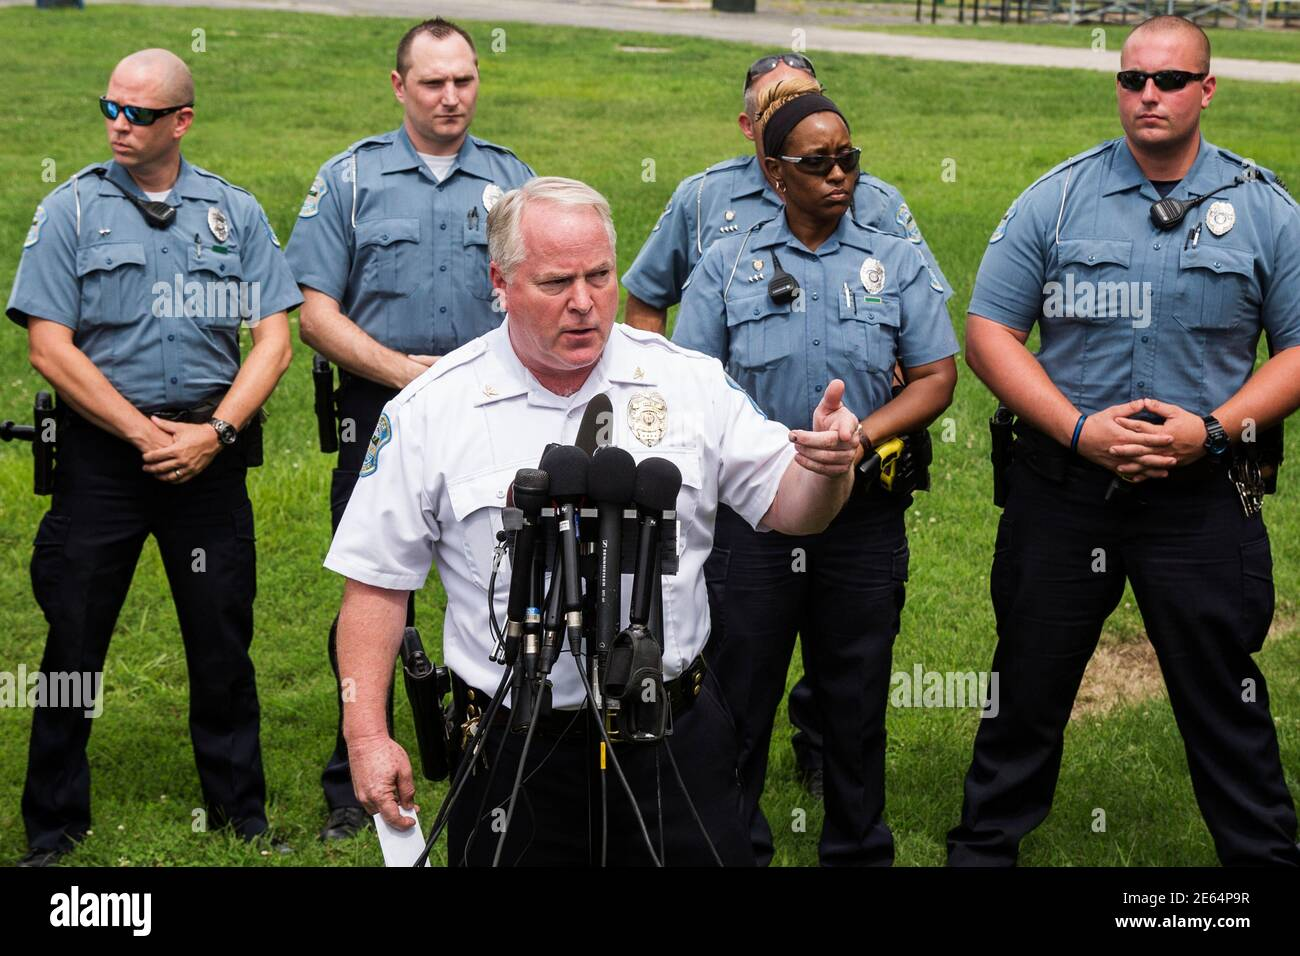 Ferguson Police Chief Thomas Jackson answers questions from the media about his office's handling of the release of information following the shooting of Michael Brown in Ferguson, Missouri August 15, 2014. Picture taken August 15, 2014. REUTERS/Lucas Jackson (UNITED STATES - Tags: CIVIL UNREST CRIME LAW POLITICS) Banque D'Images